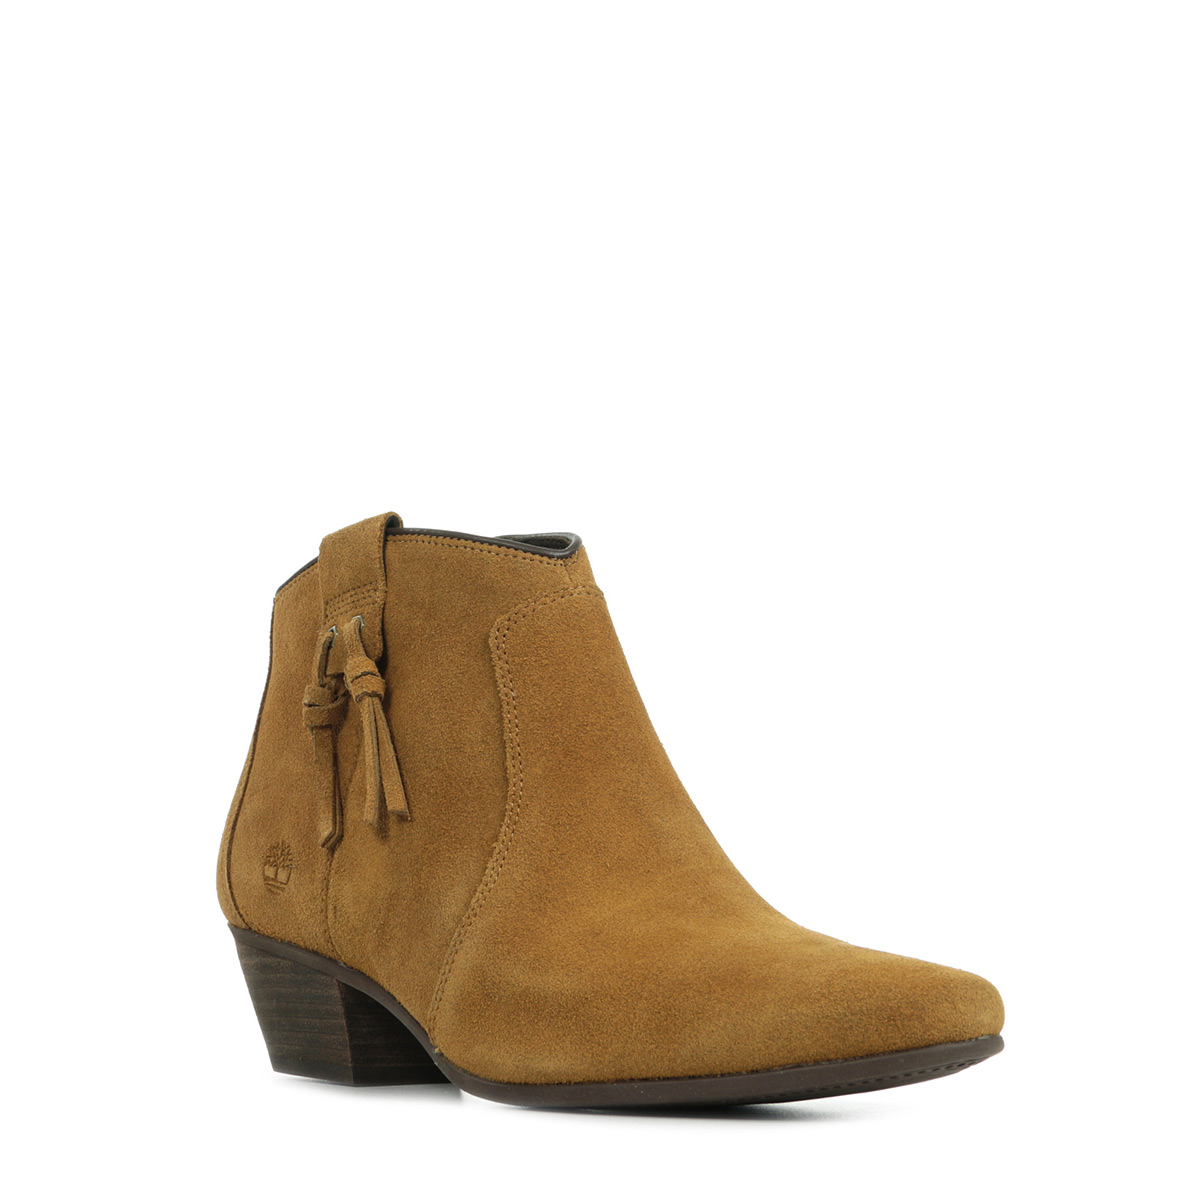 Boots Timberland Tassle Boot Tan Suede GMQRl1D